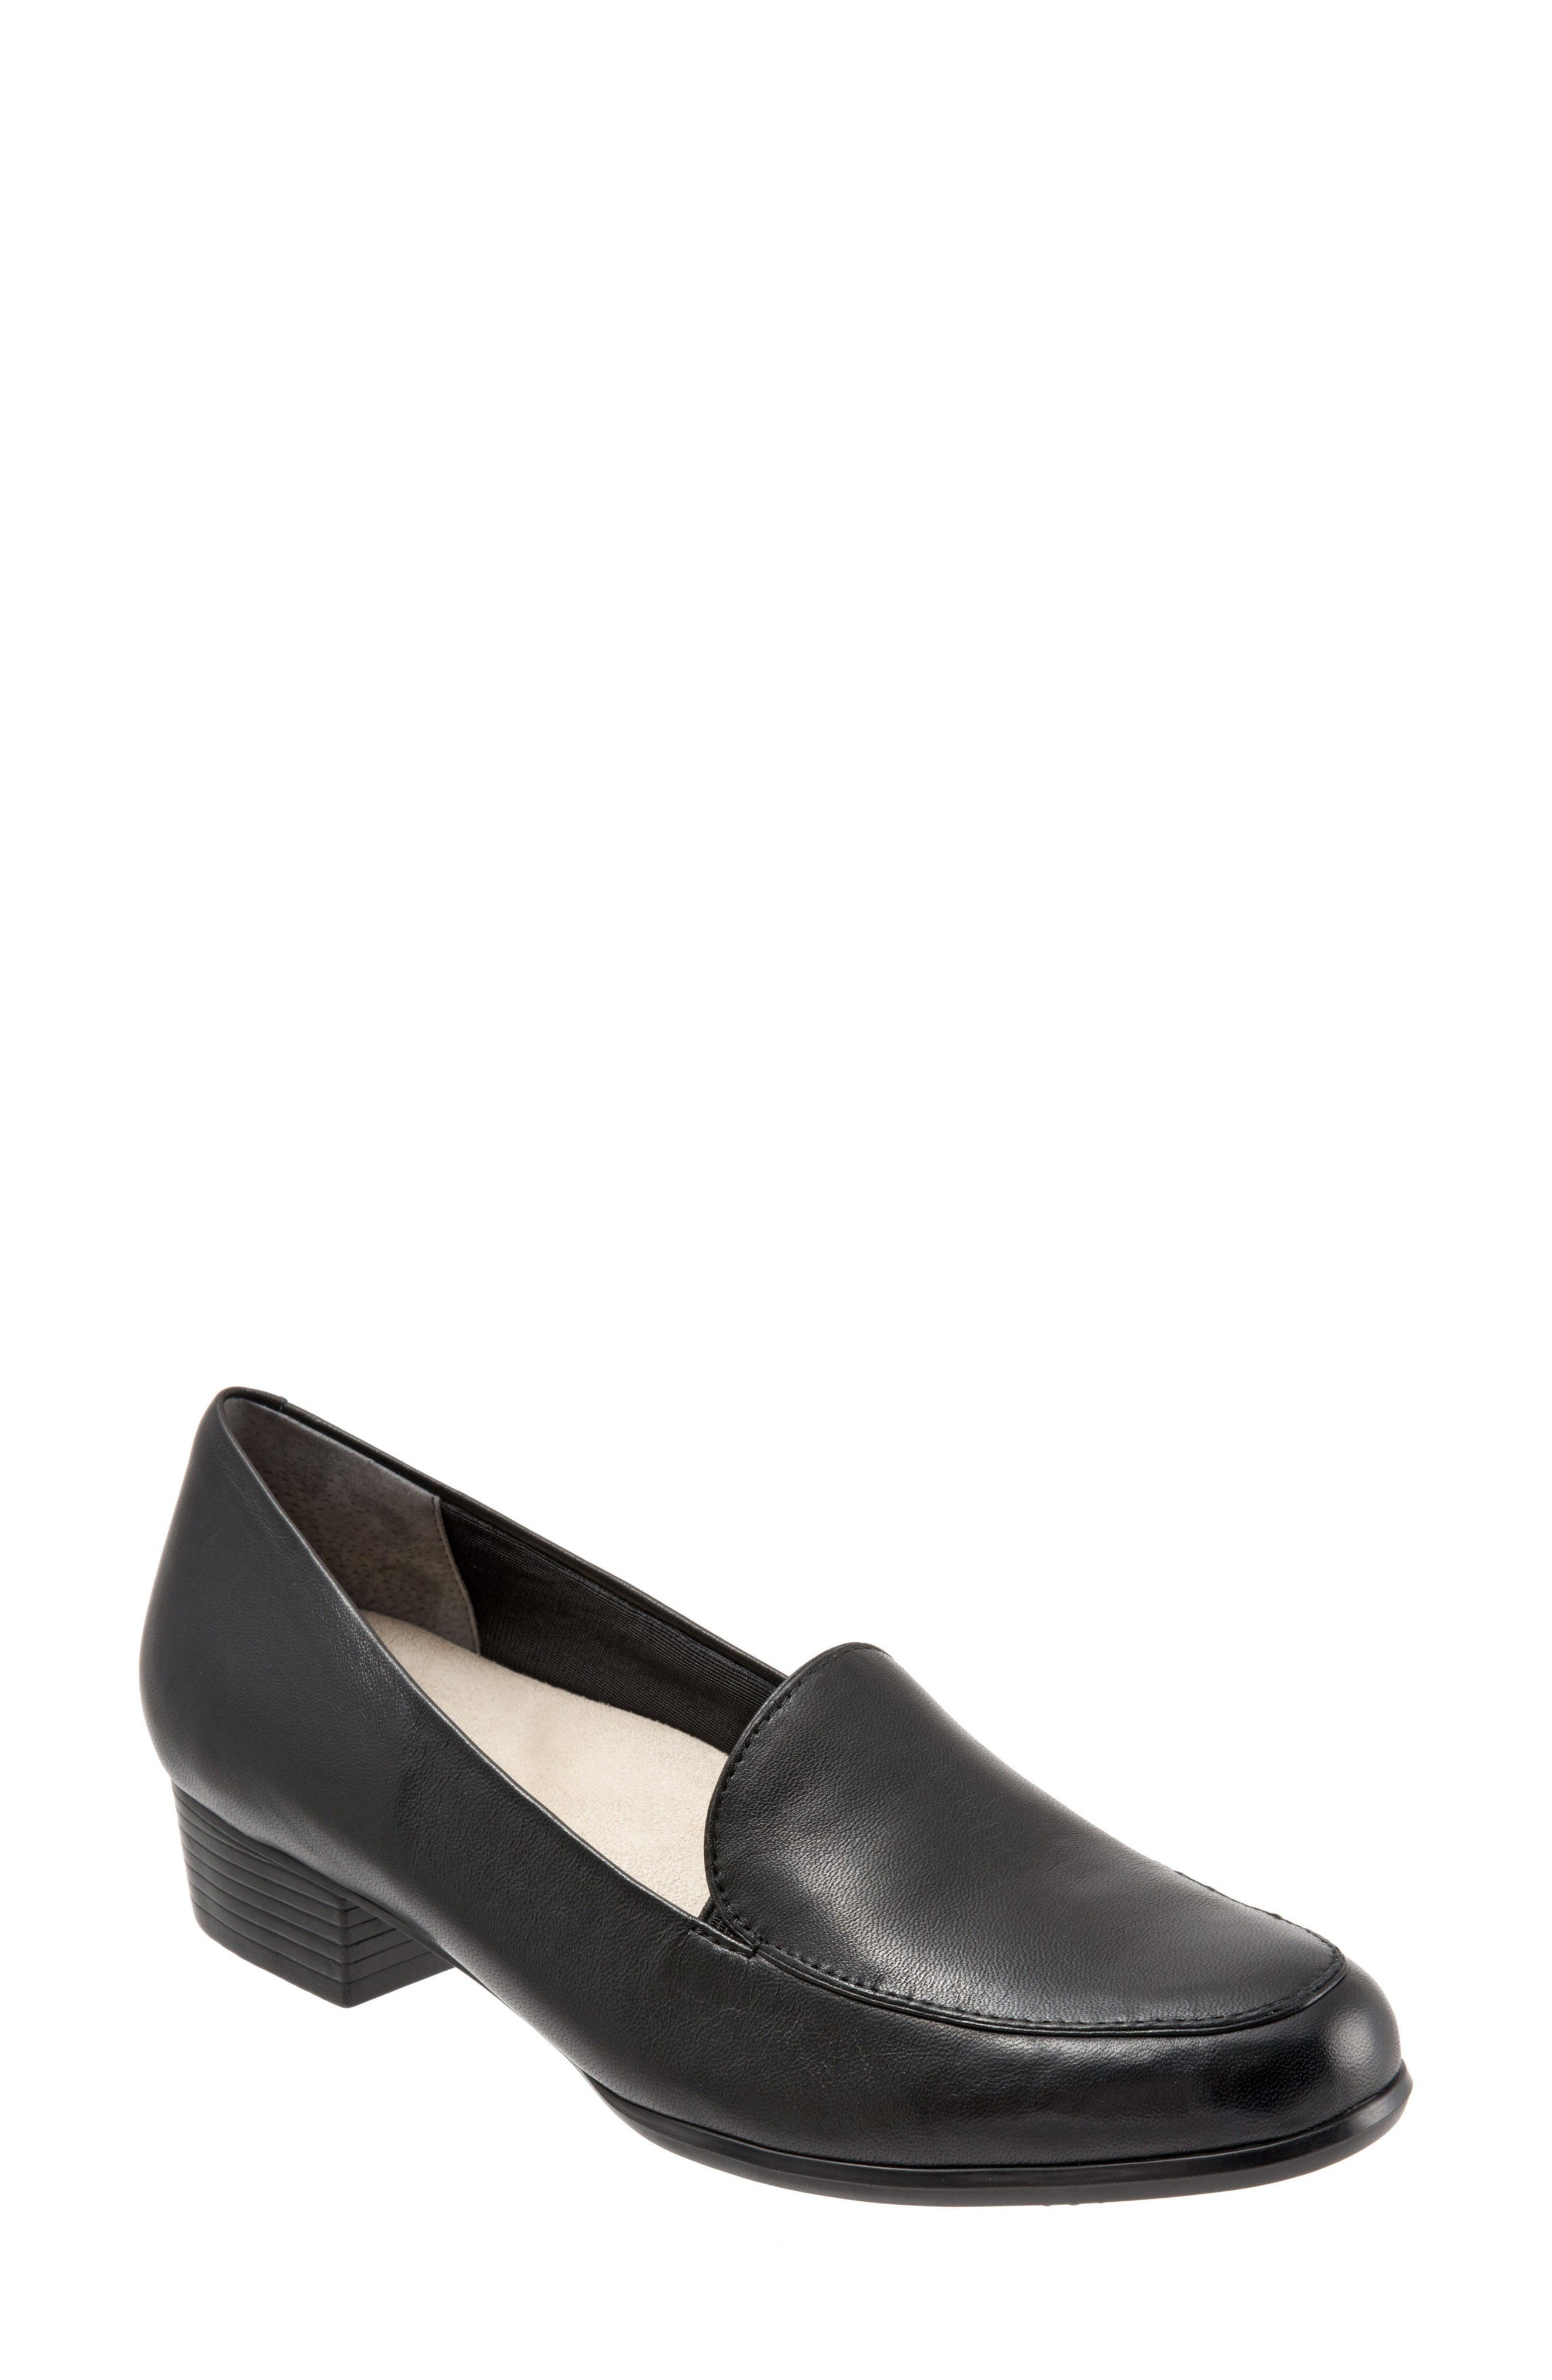 Alternate Image 1 Selected - Trotters Monarch Loafer (Women)